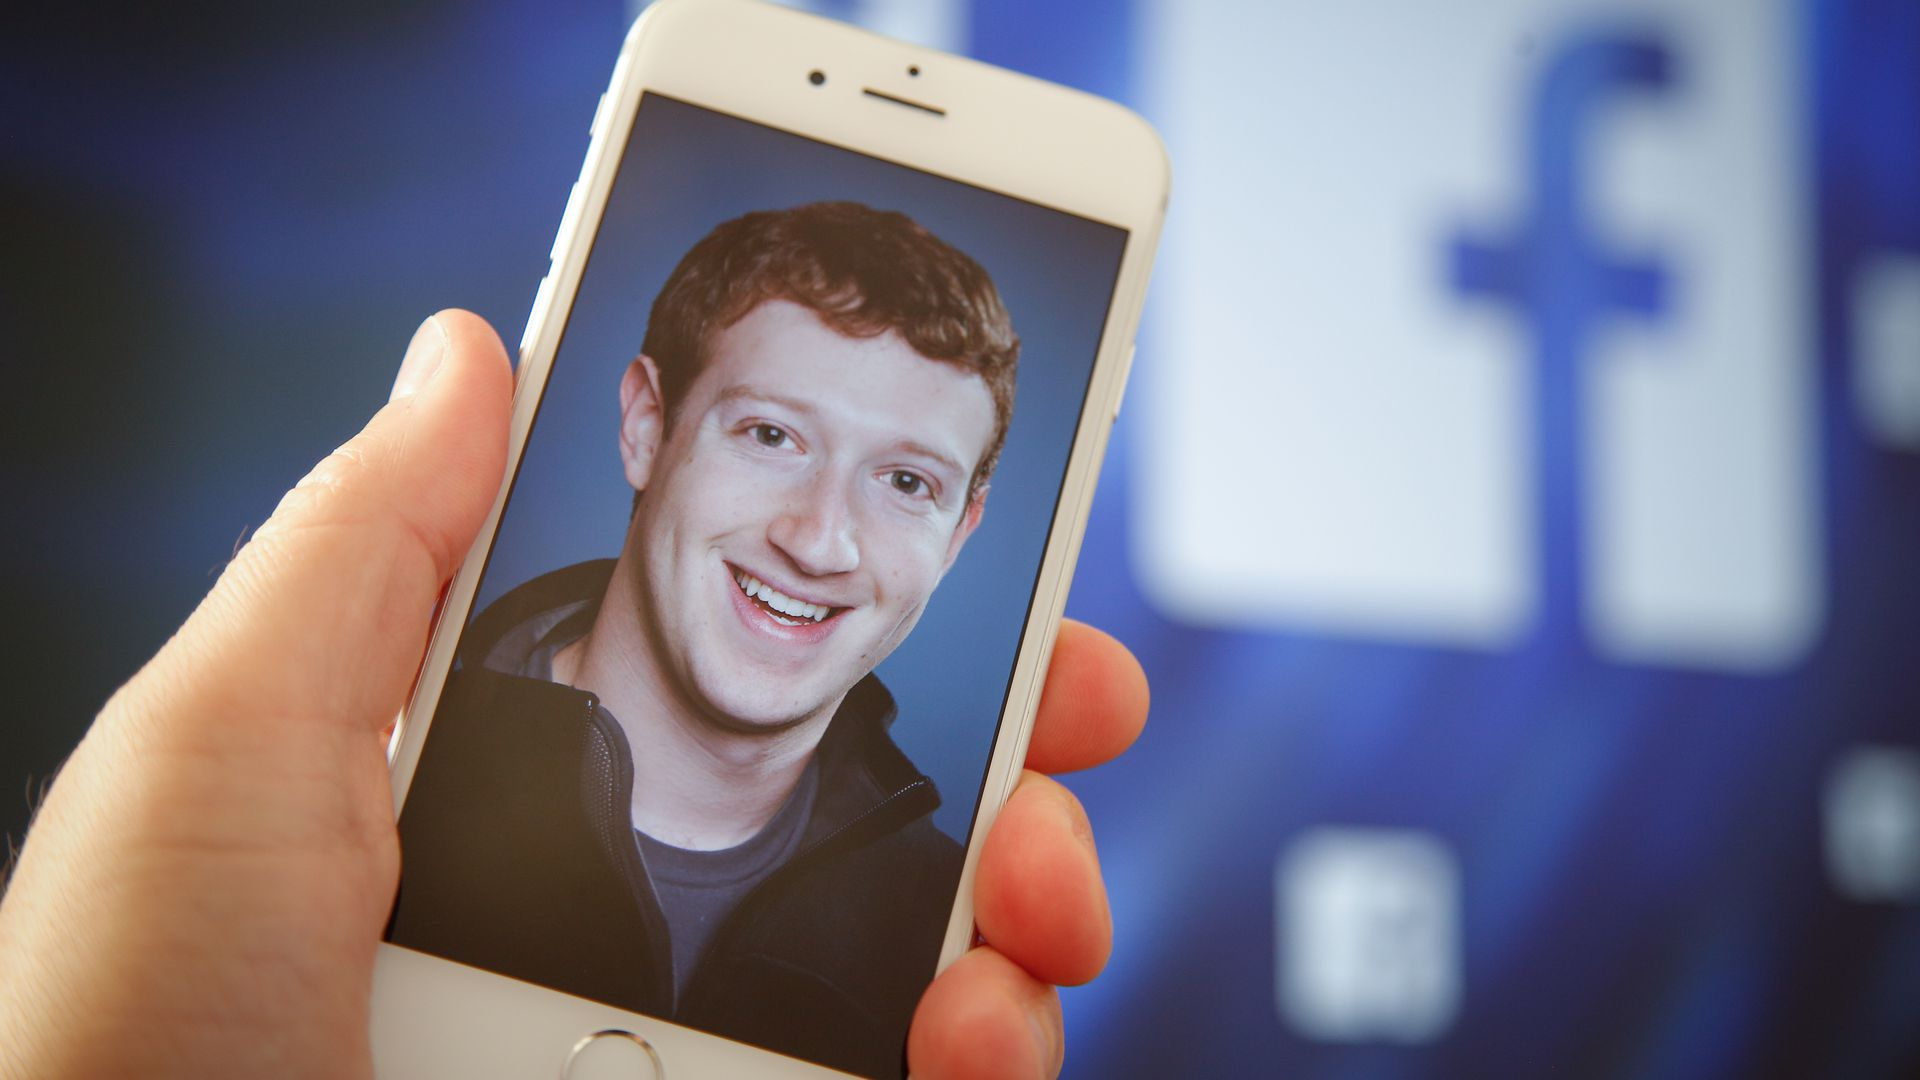 A portrait of Facebook founder Mark Zuckerberg